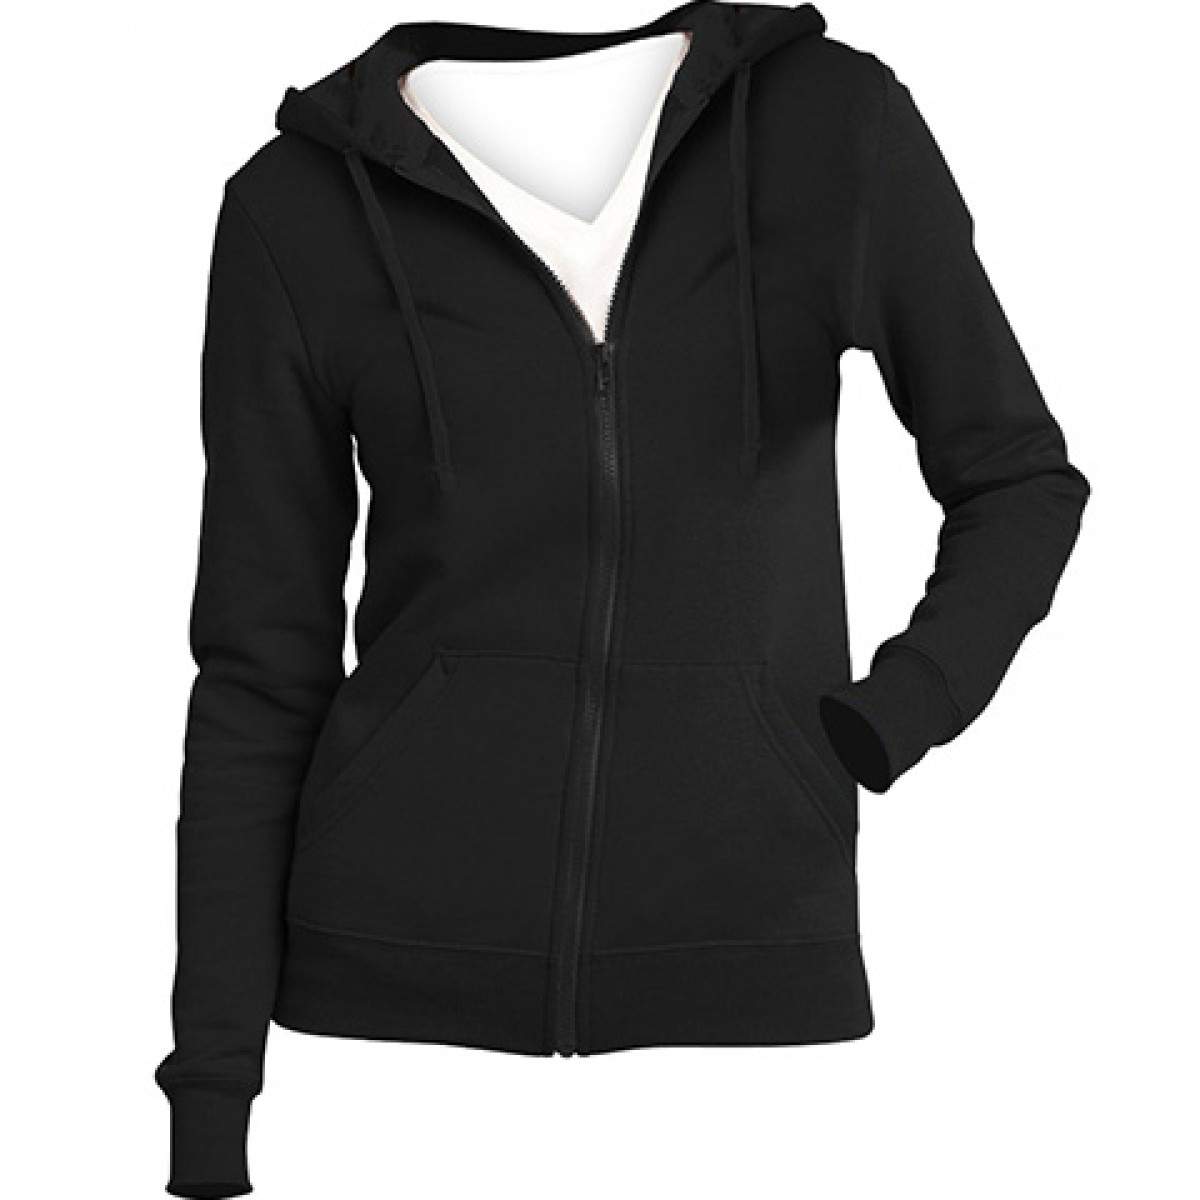 Juniors Full-Zip Hoodie-Black-M